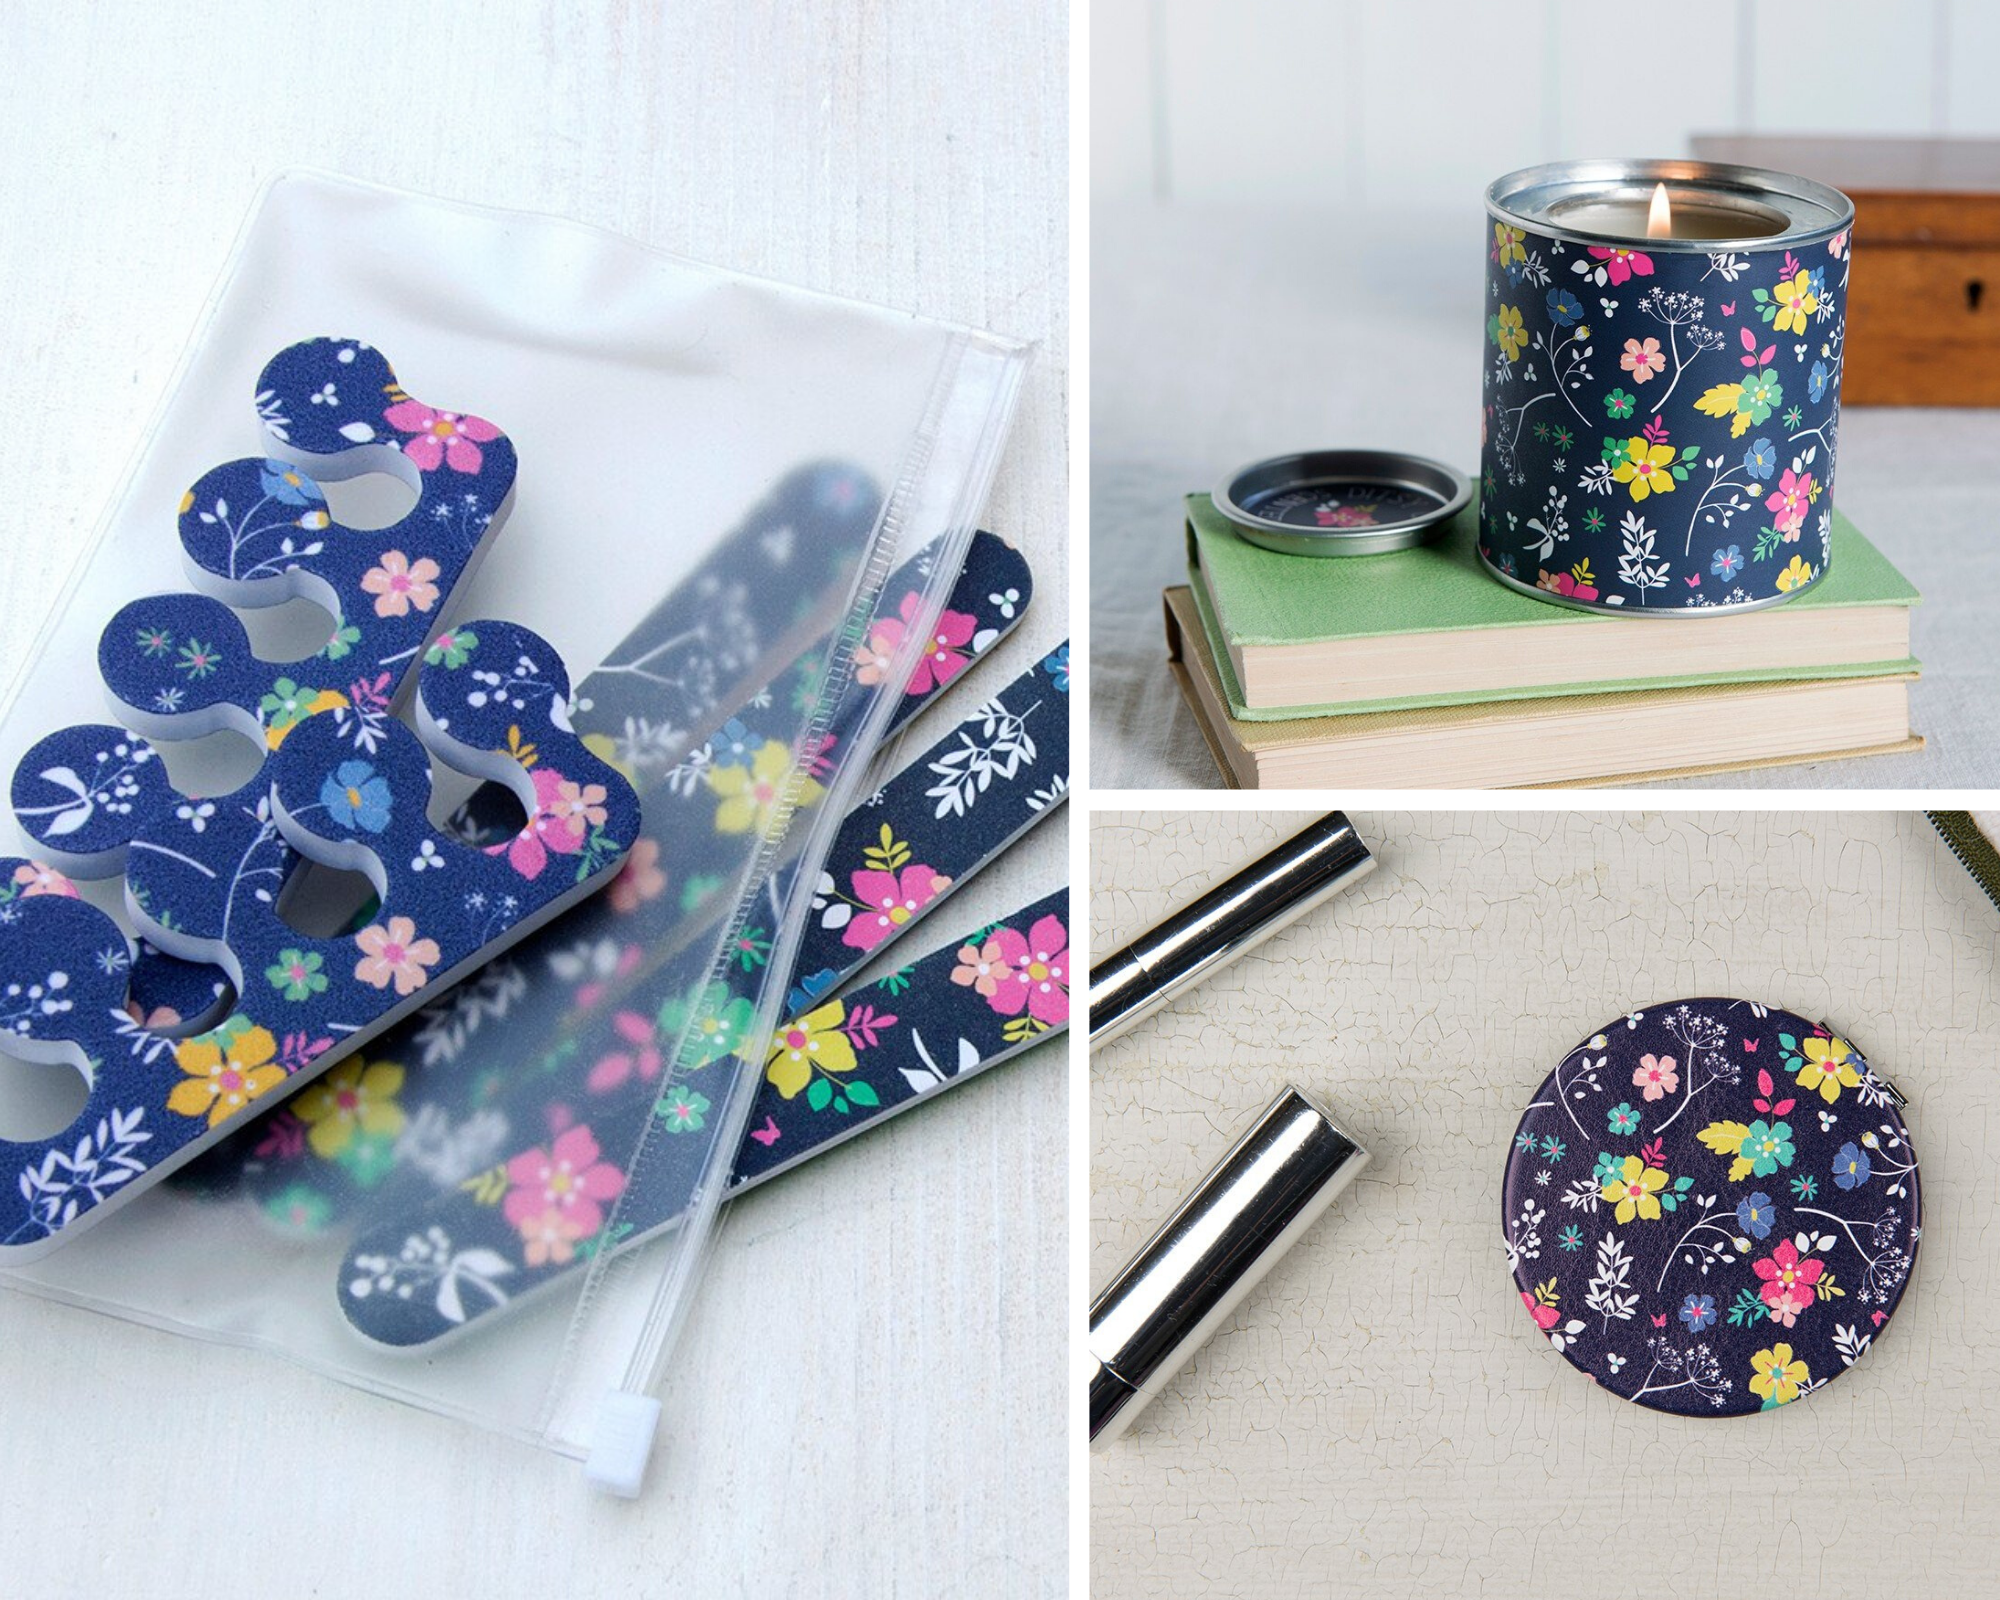 Ditsy Garden nail file kit, scented candle, compact mirror